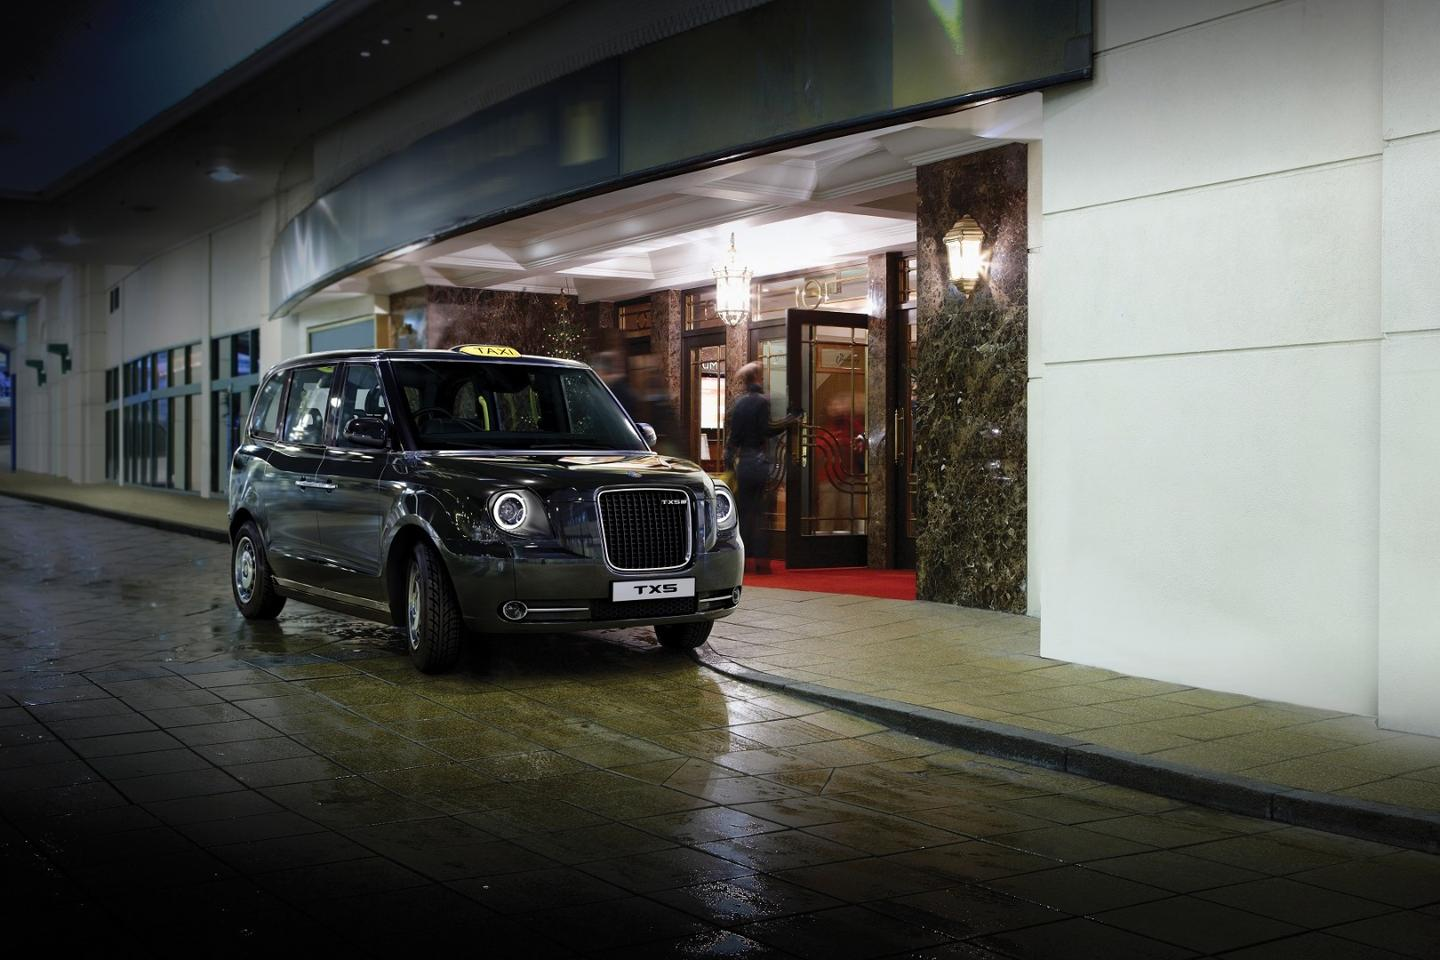 The TX5 is due to be launched in the UK at the end of 2017